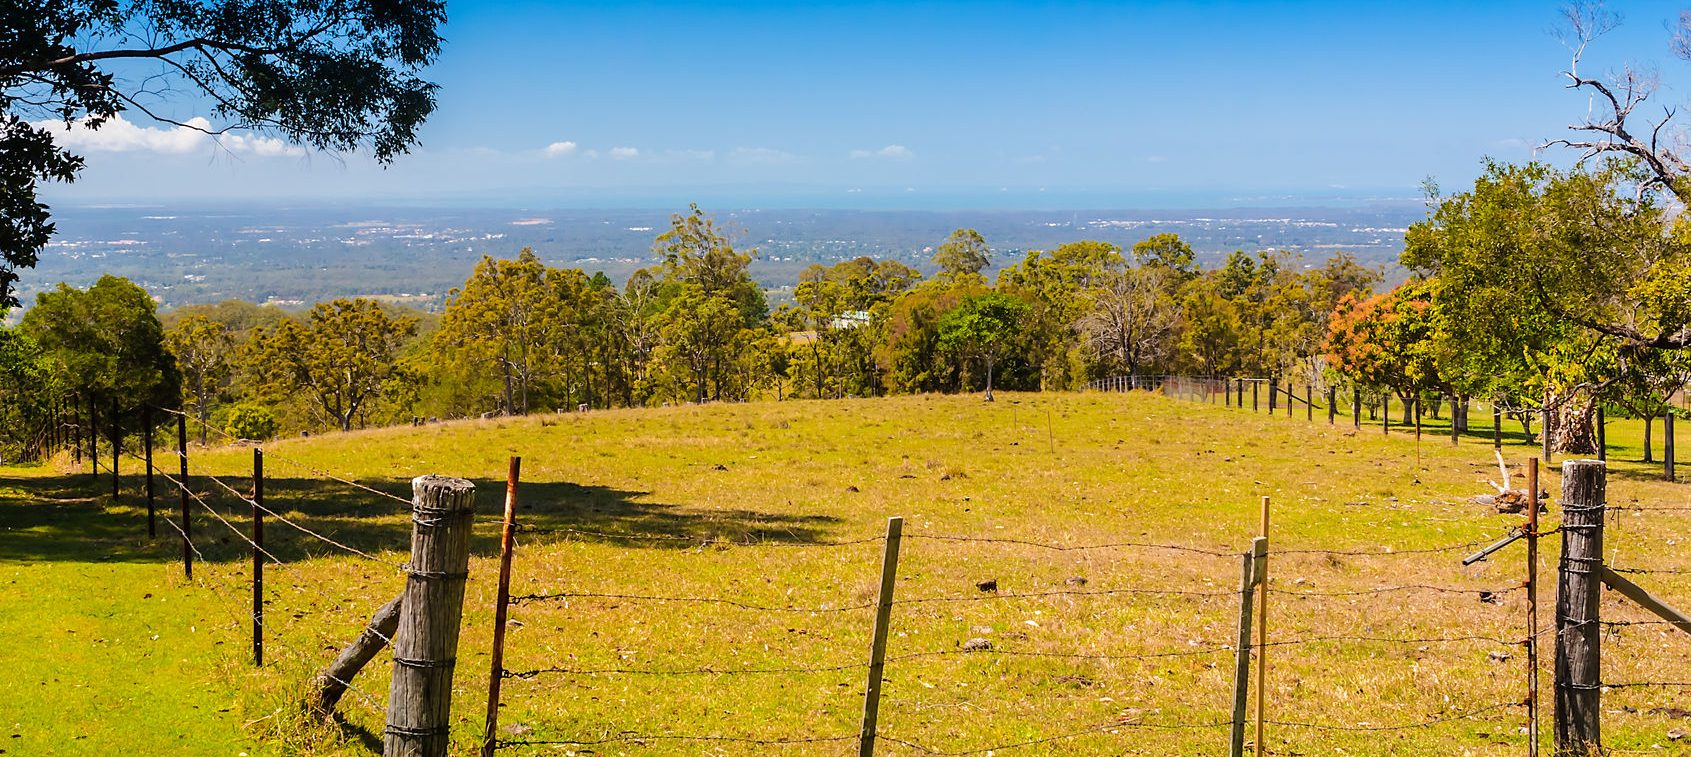 Rural Queensland